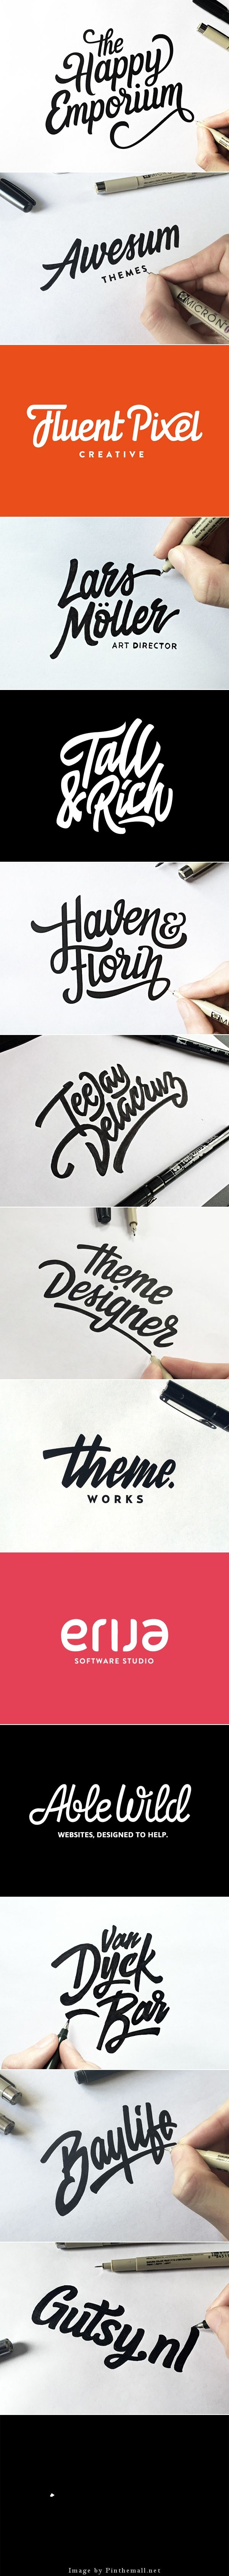 I love this. Doing a logo with hand lettering takes a lot of time. I give props to him for doing this, it looks amazing and clean. This is pretty inspirational for me considering I have a talent for drawing. | Lettering & Logotype Vol.2 by Paul von Excite